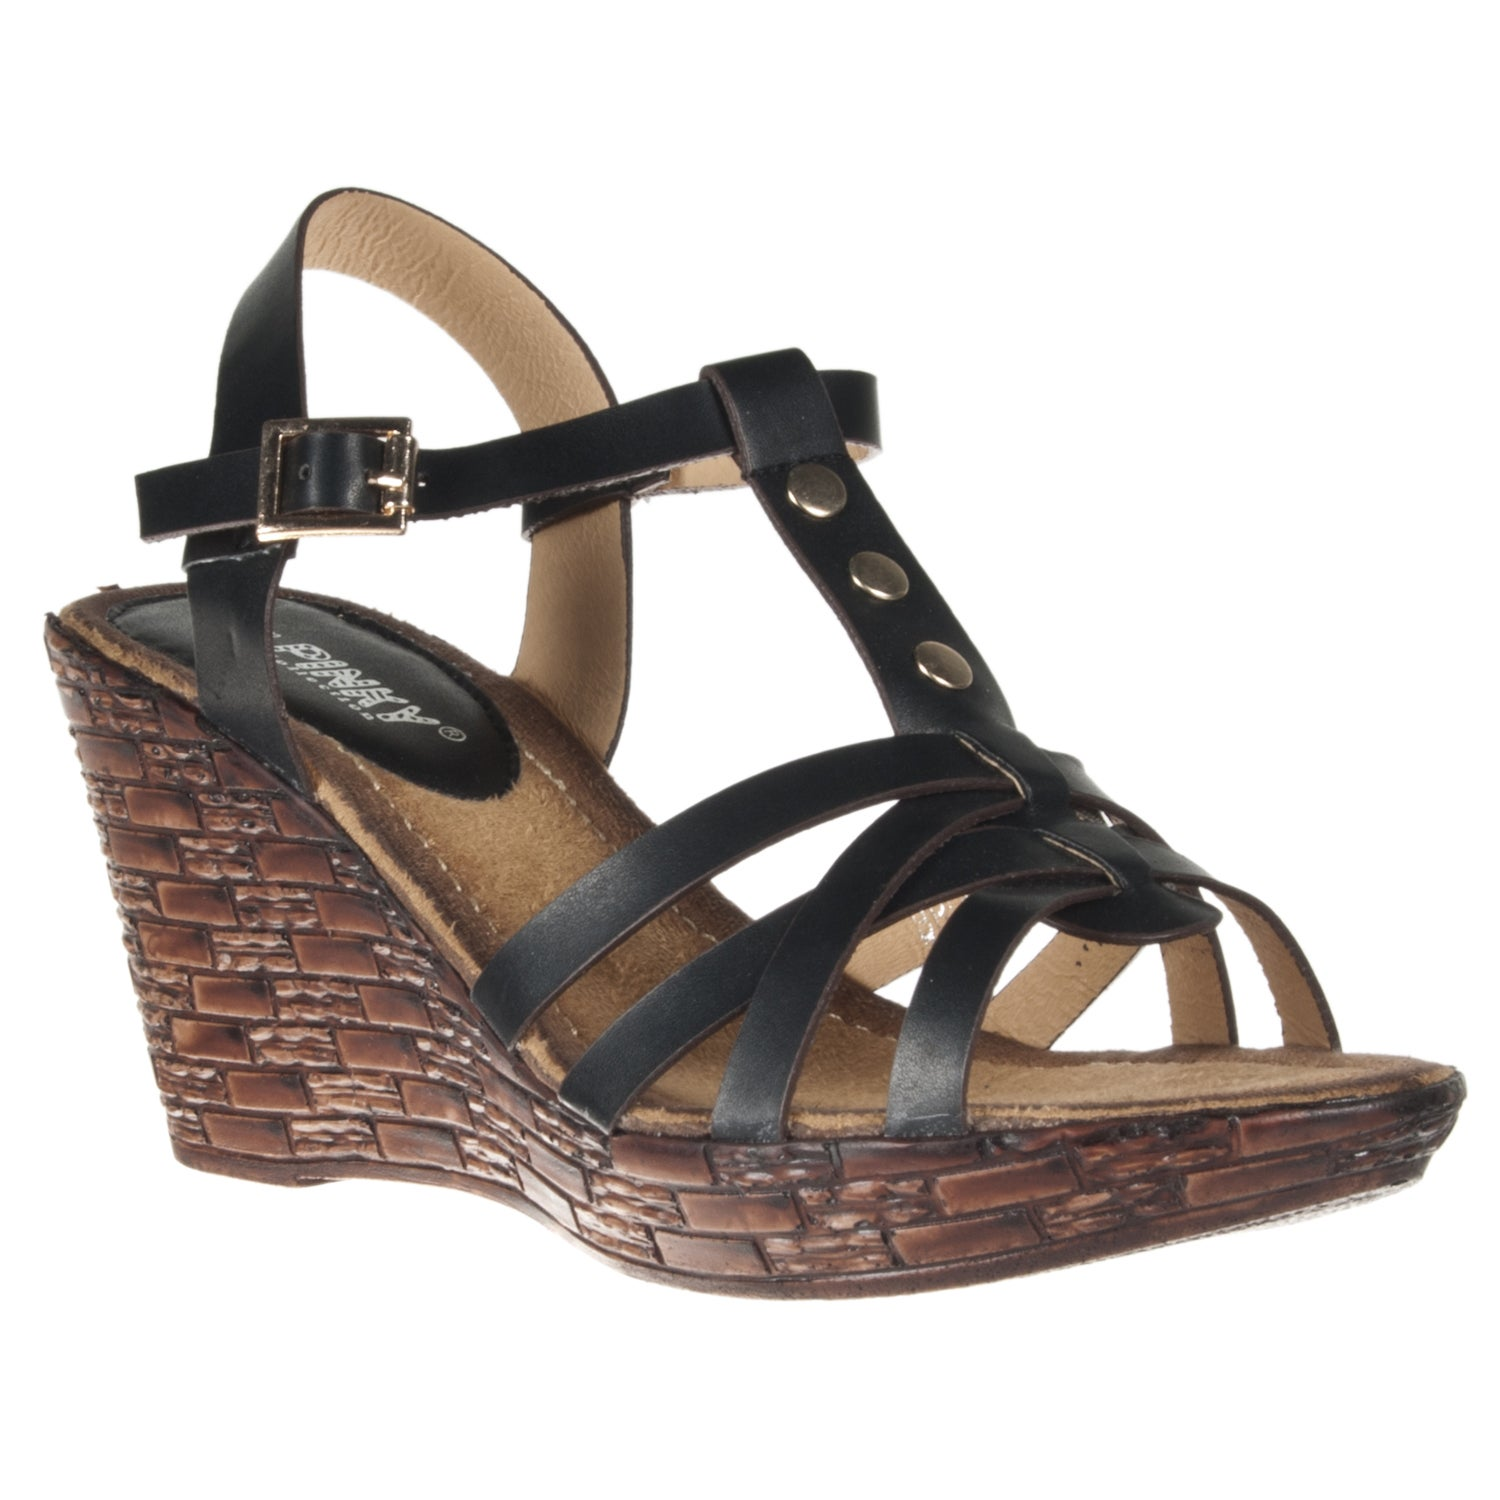 Riverberry Women's 'Brody' Black Wedge T-strap Sandals